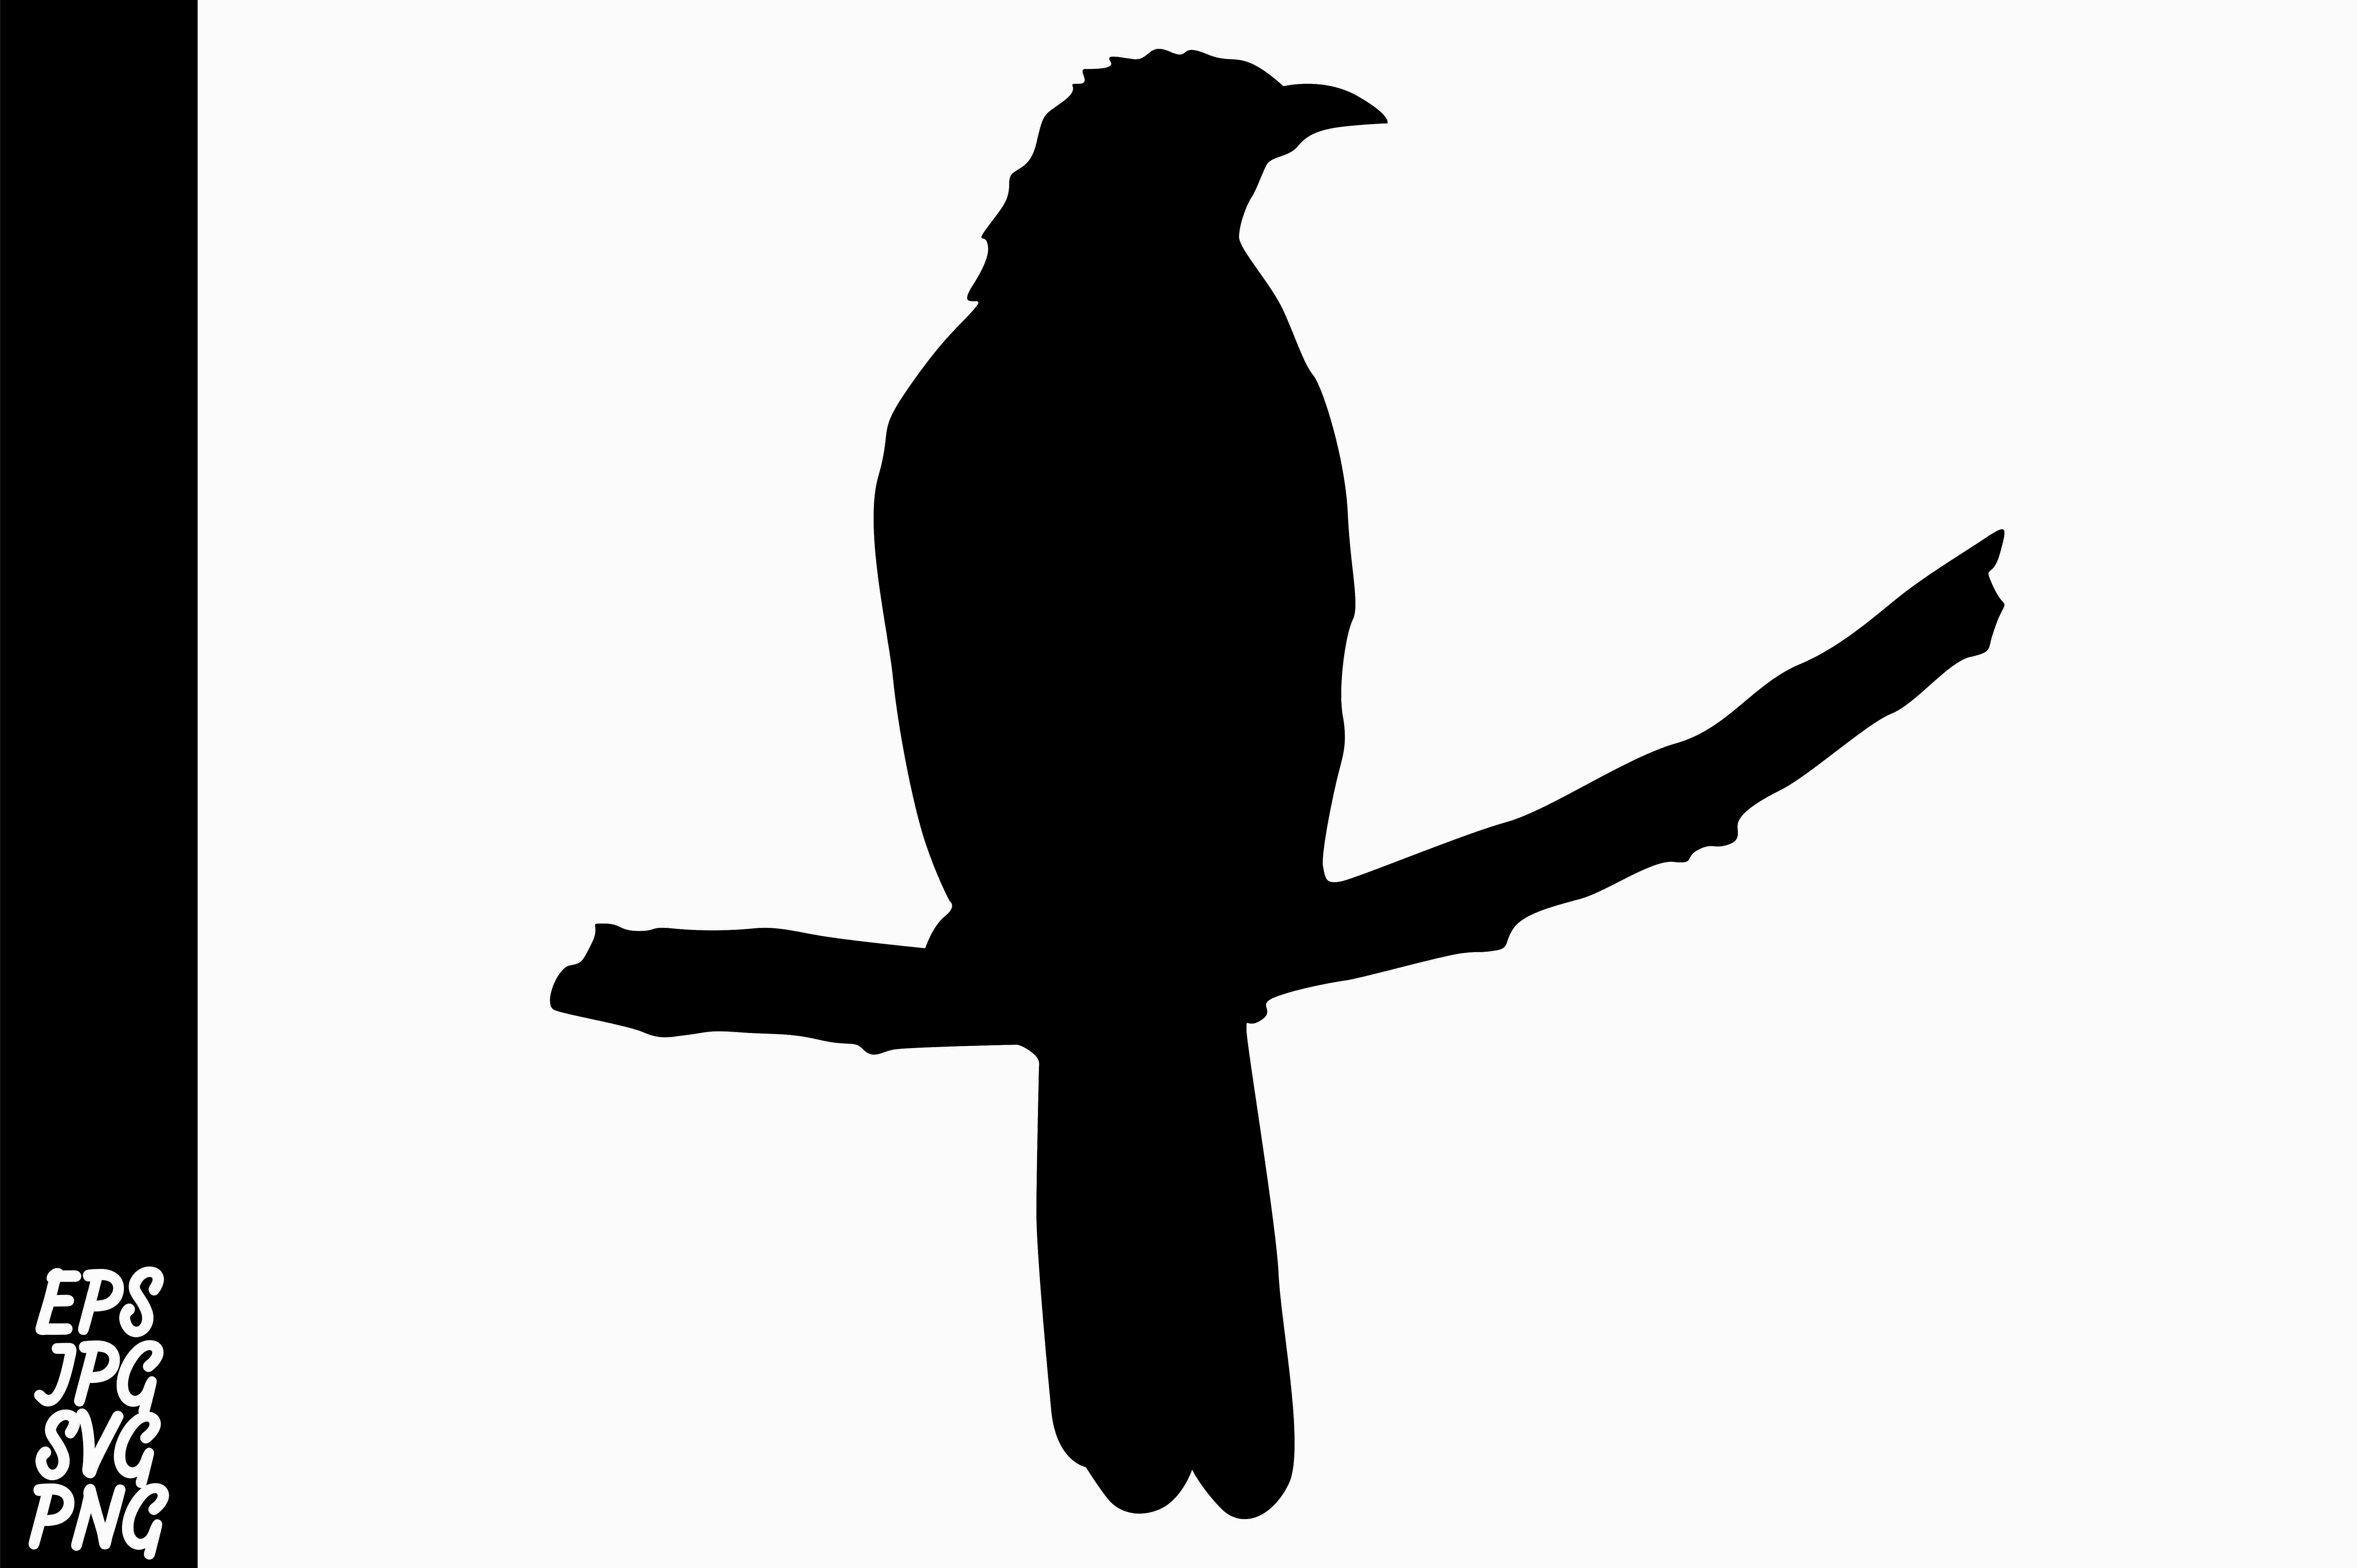 Download Free Bird Silhouette Graphic By Arief Sapta Adjie Creative Fabrica for Cricut Explore, Silhouette and other cutting machines.